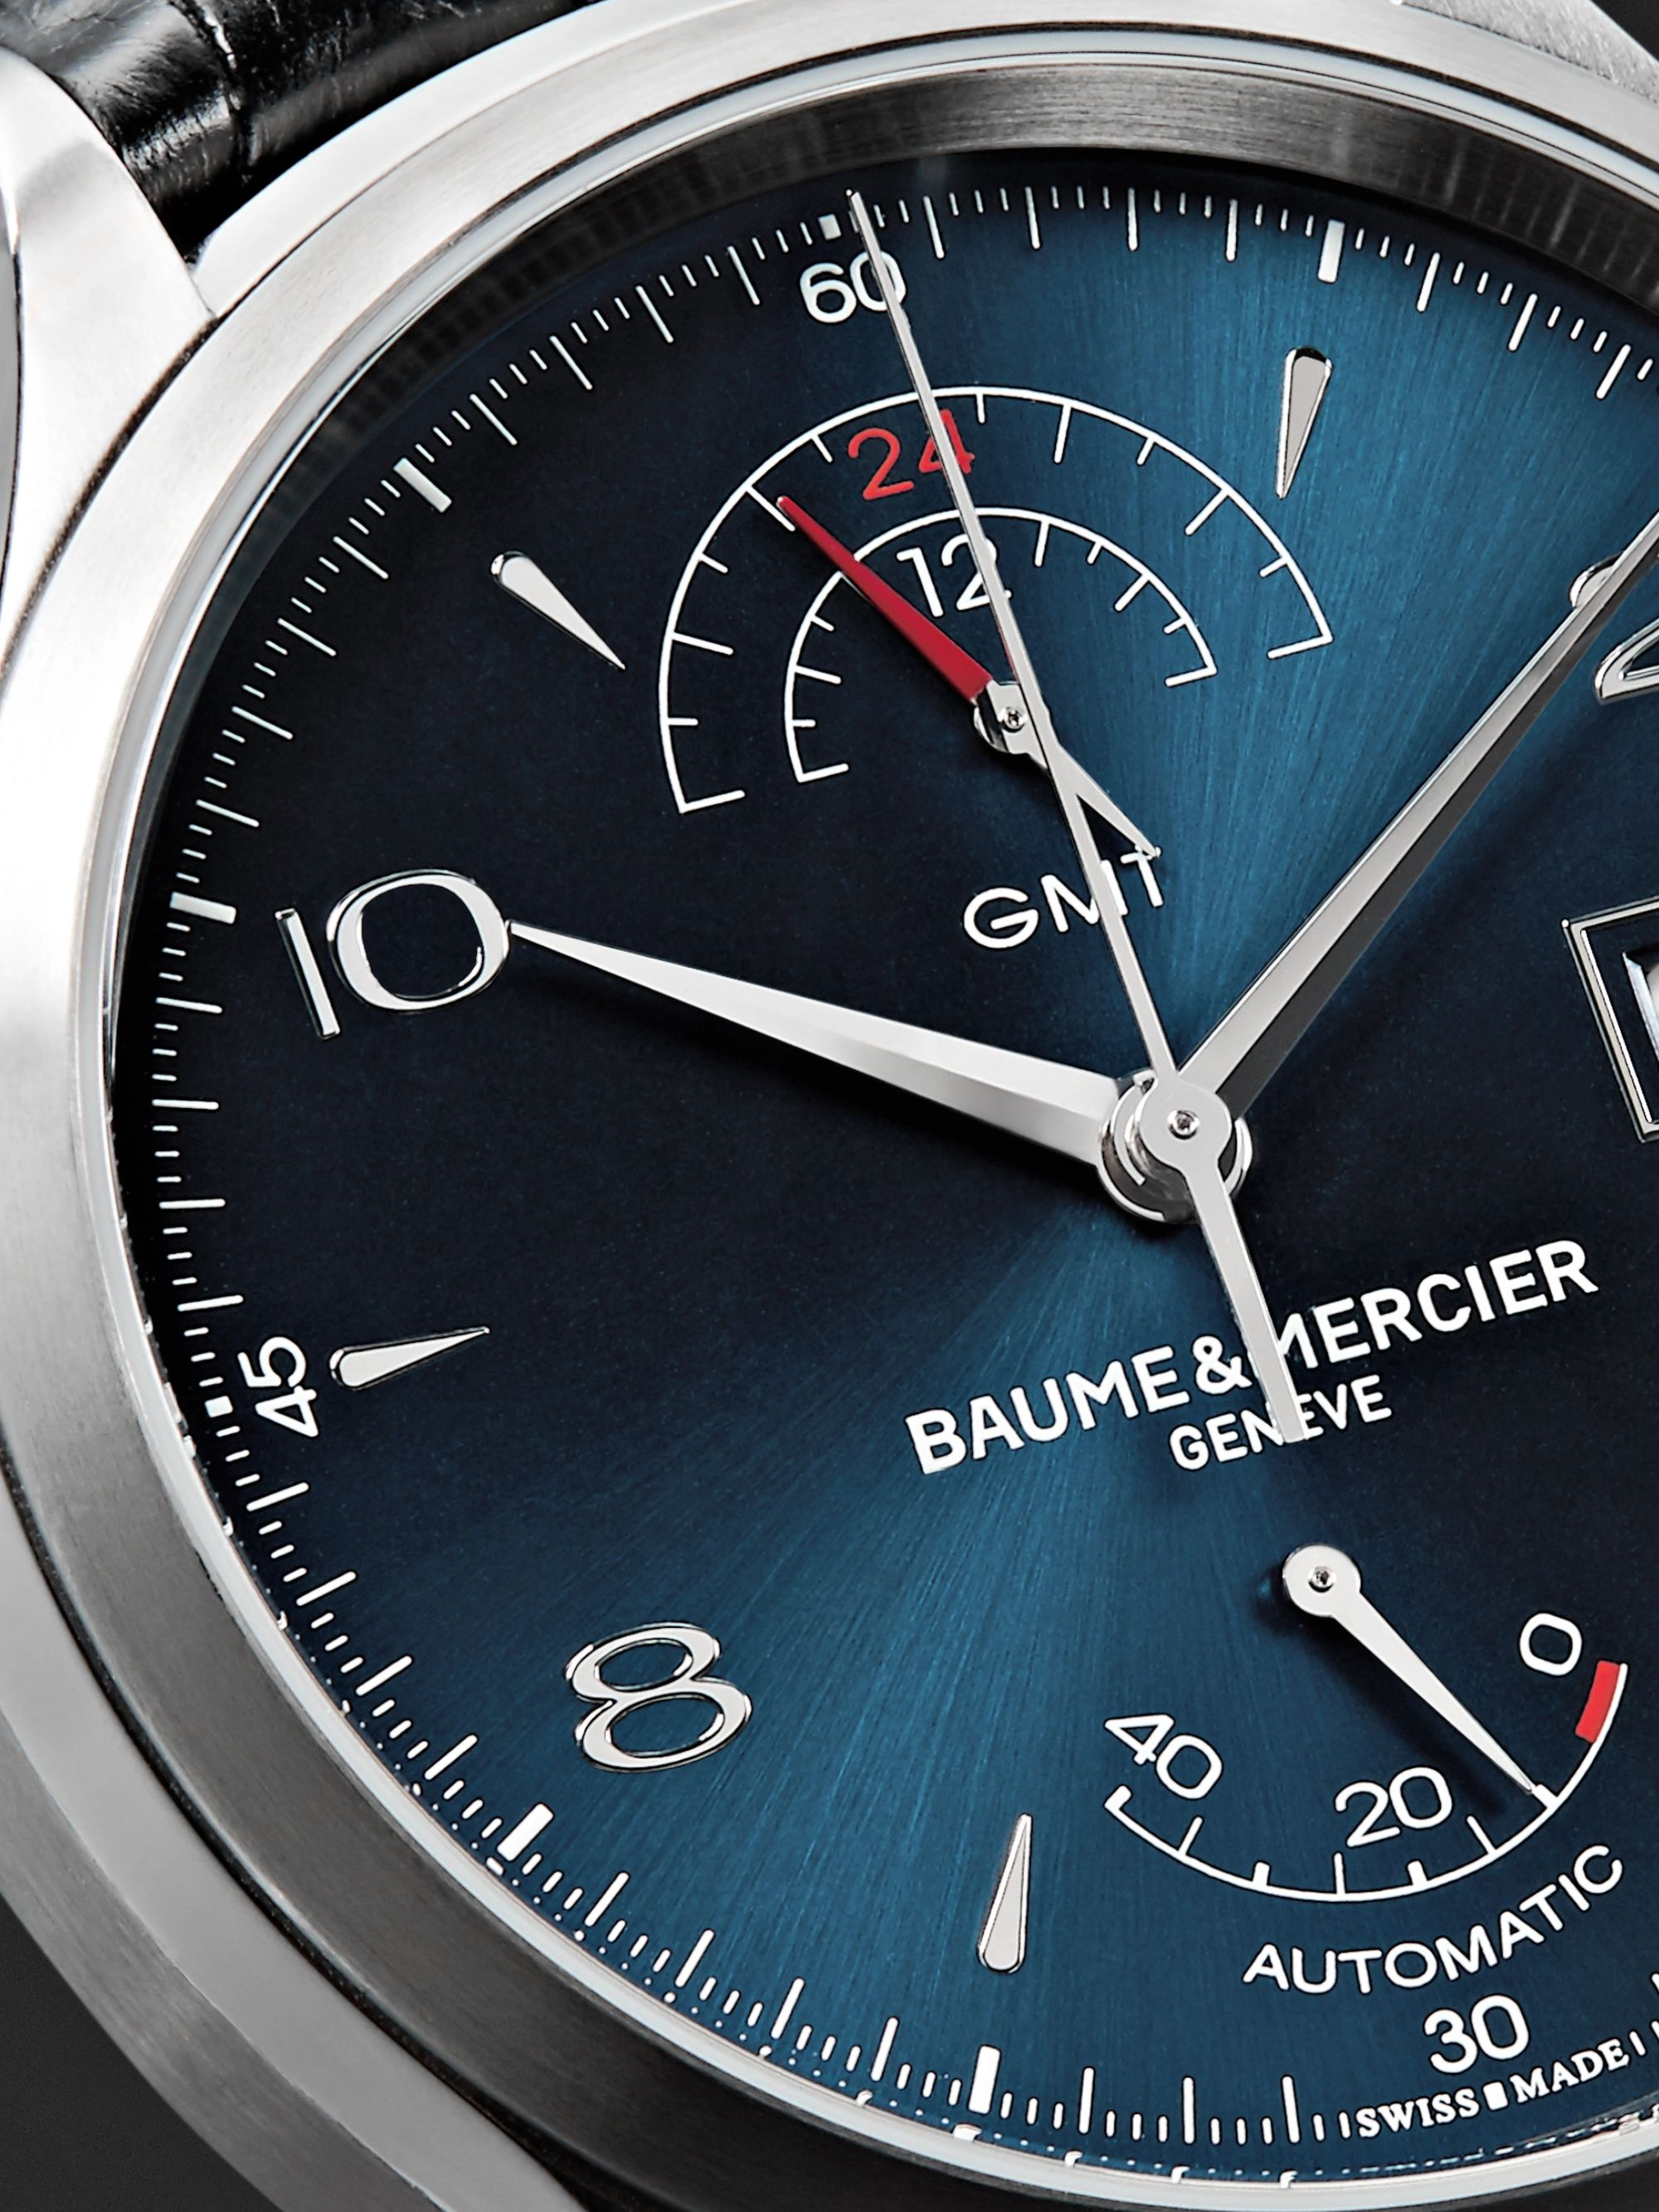 Baume & Mercier Clifton Automatic 43mm Stainless Steel and Alligator Watch, Ref. No. 10316